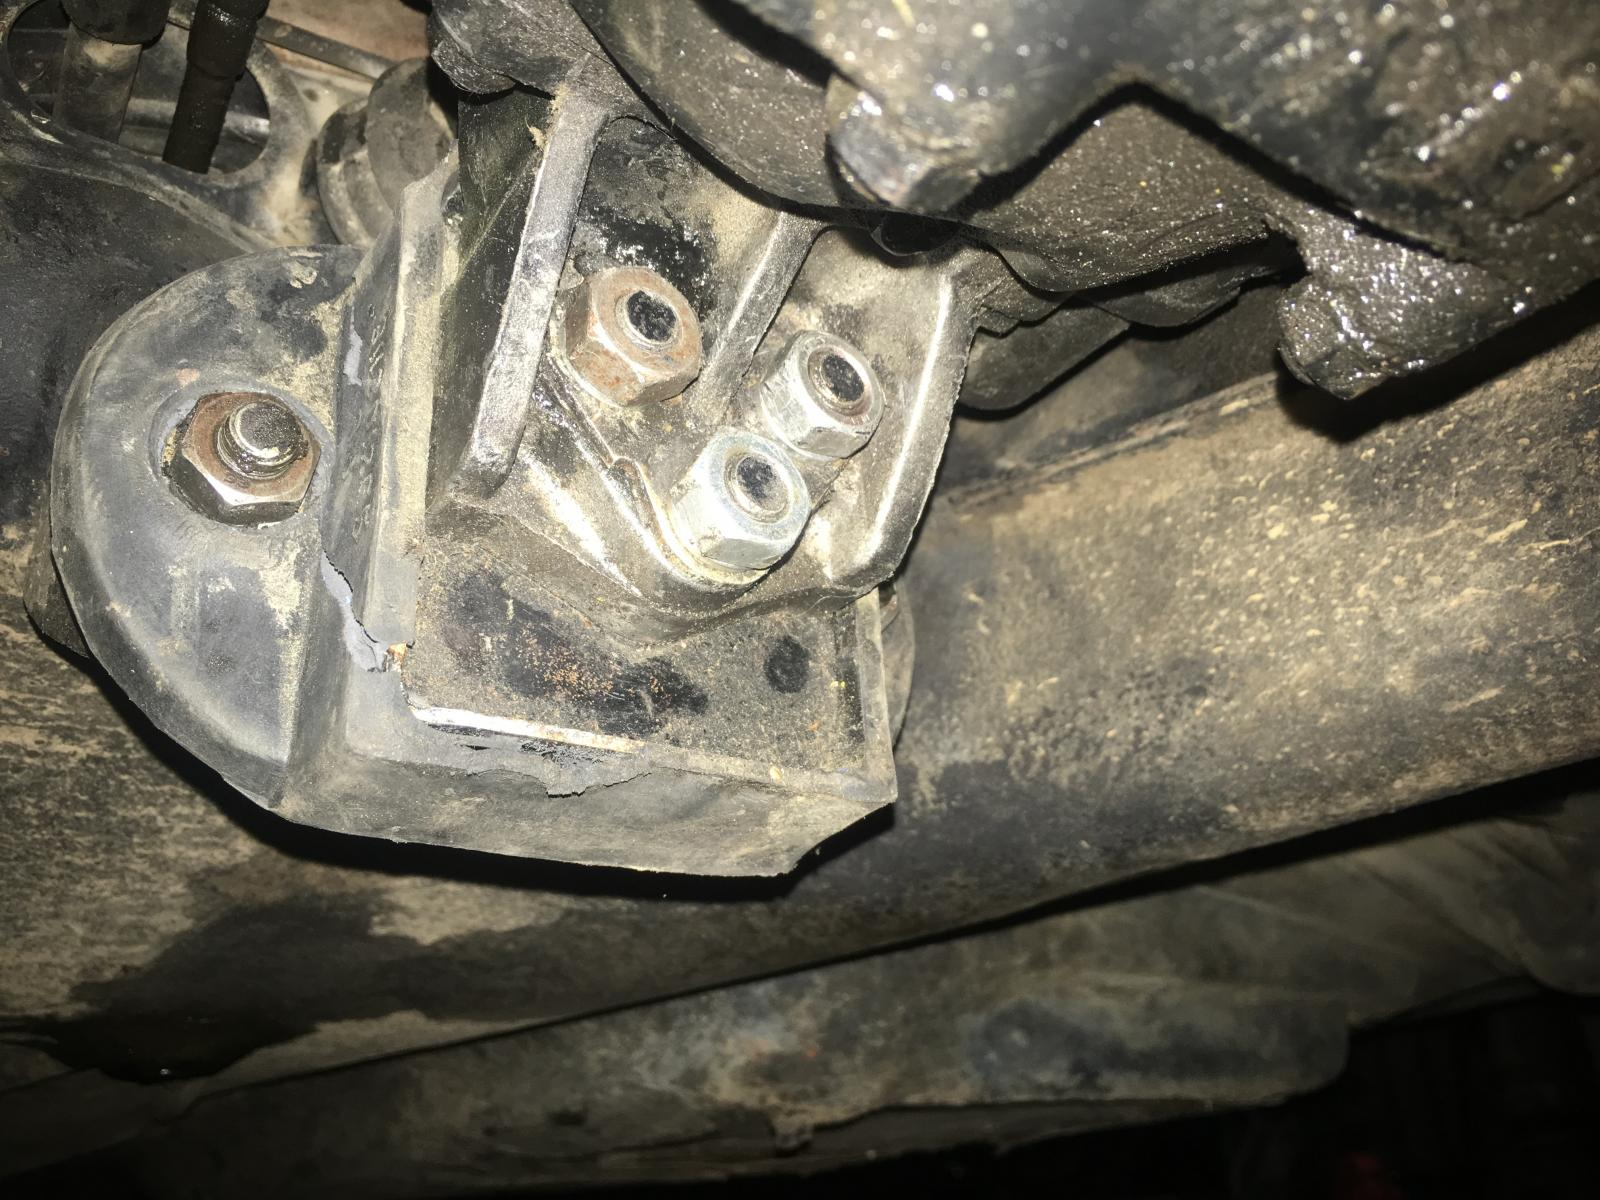 Busted ass trans mount